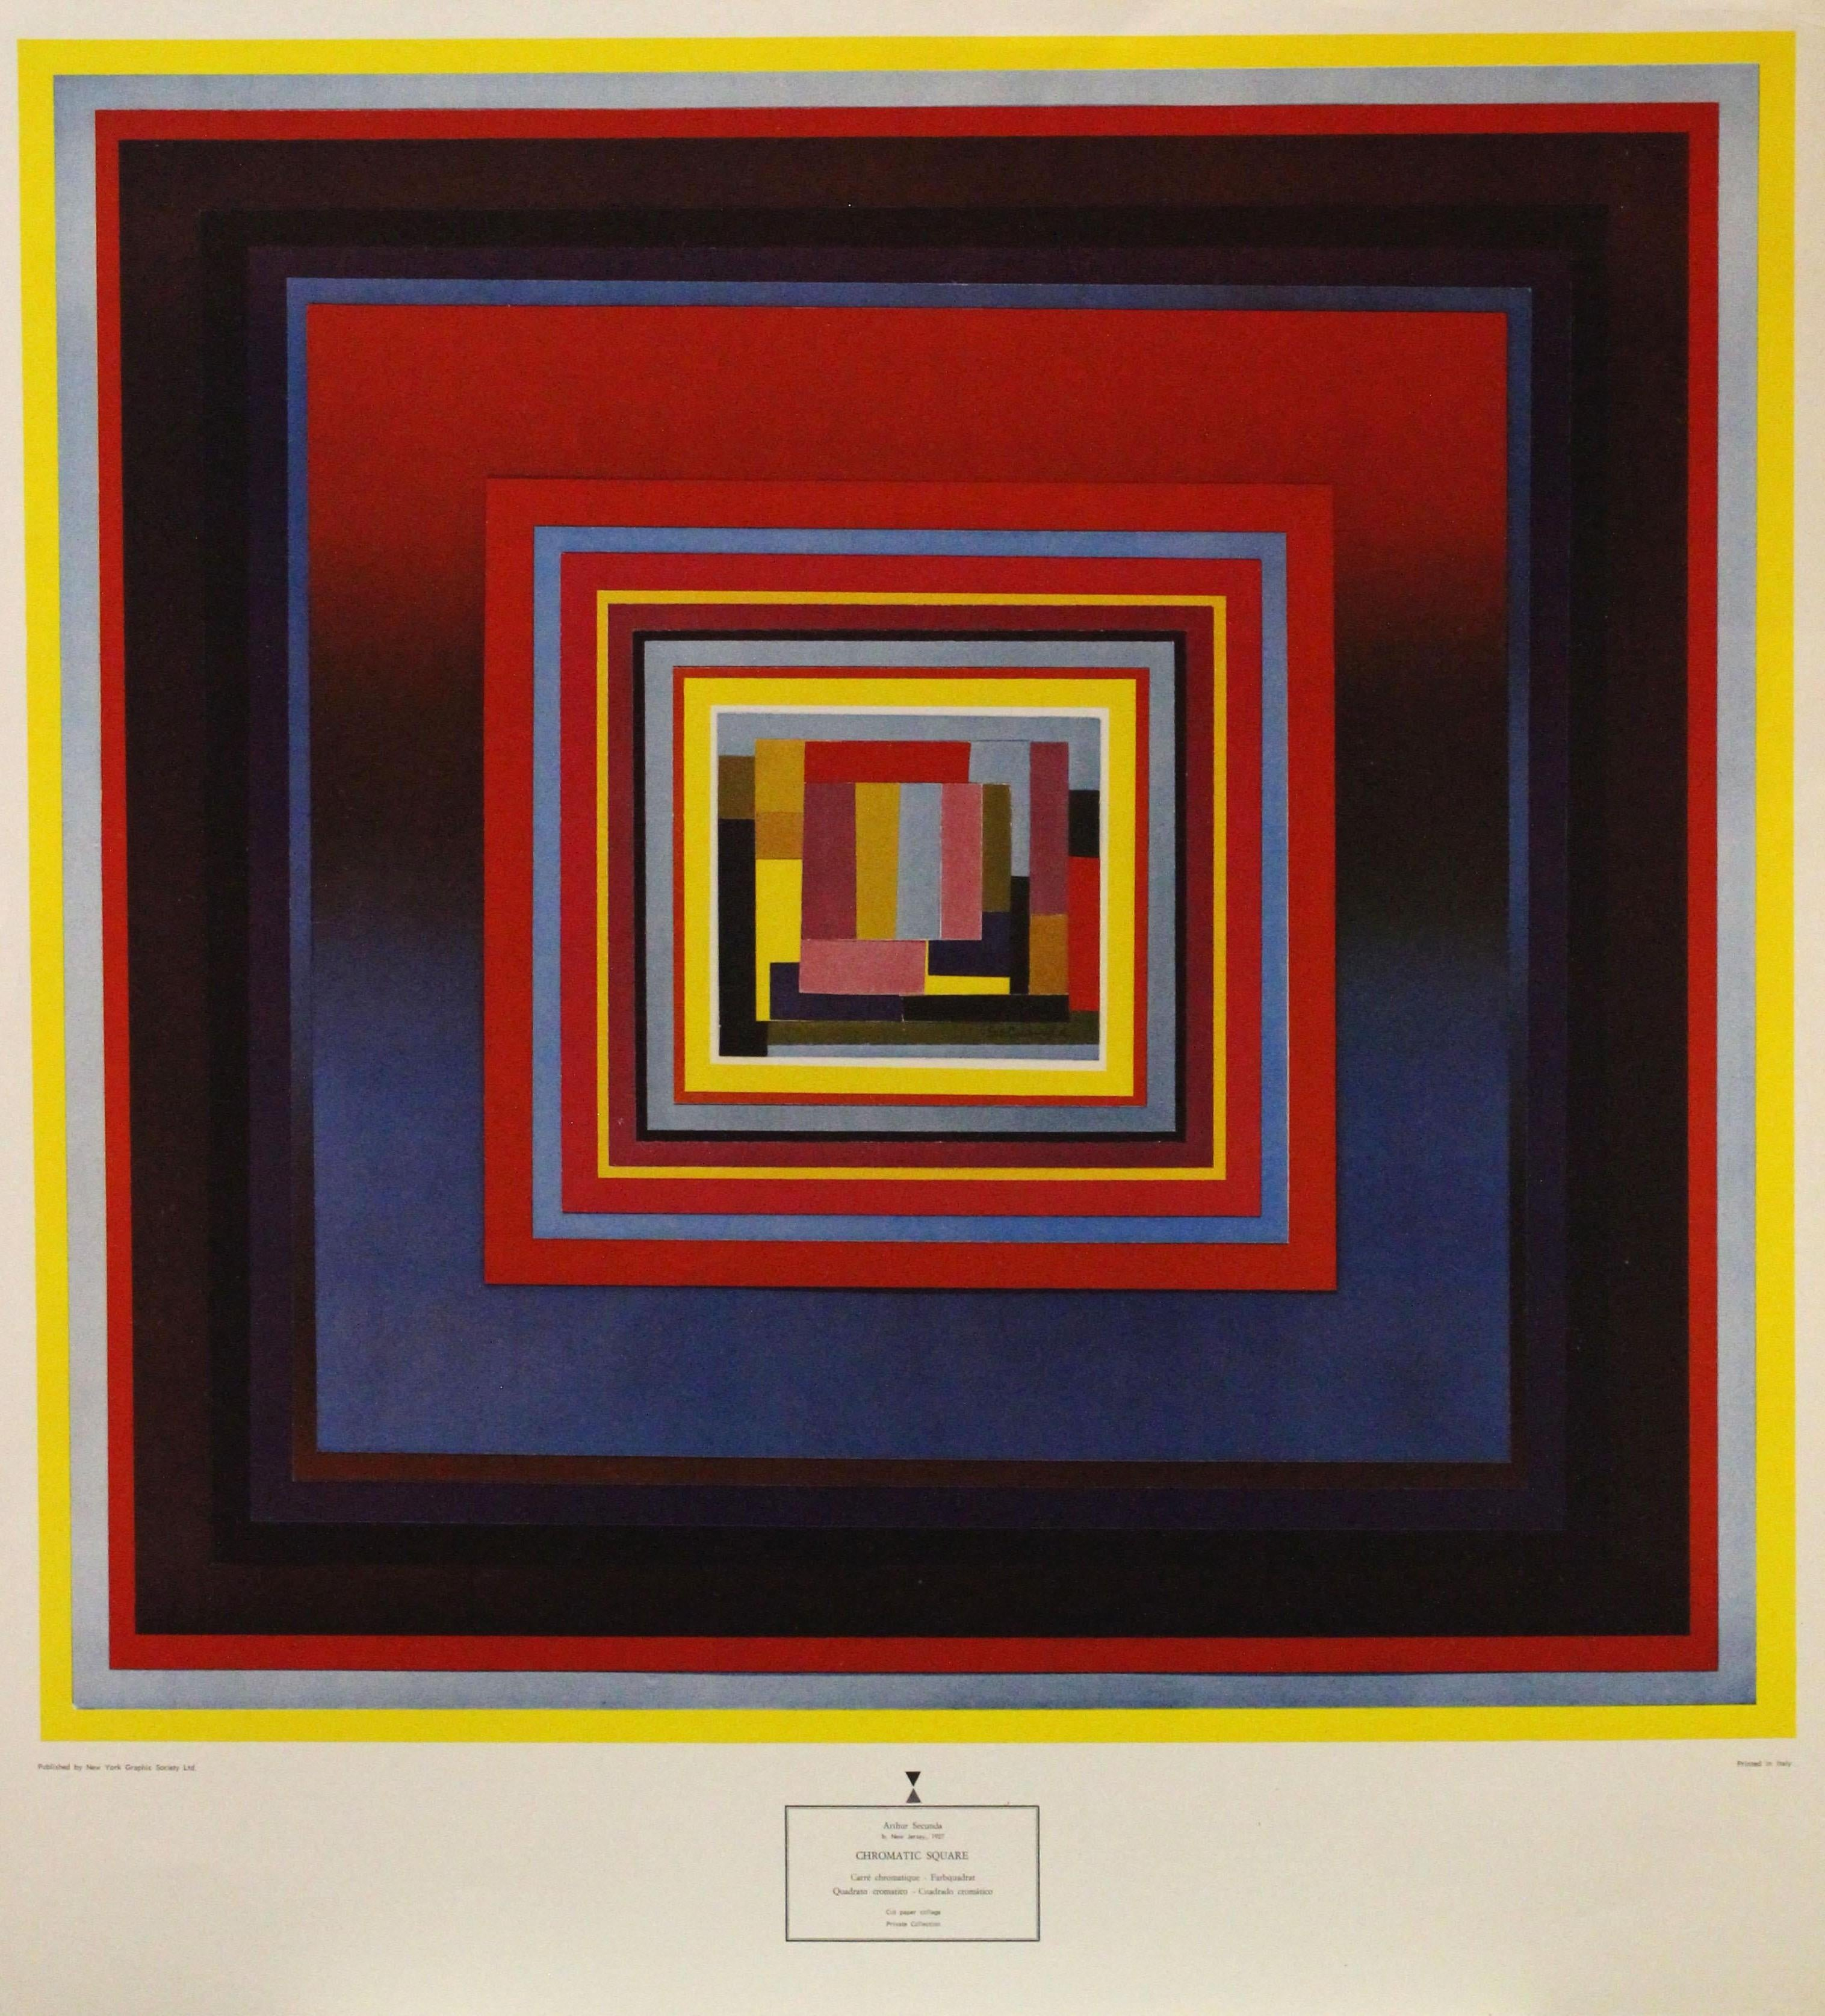 """""""Chromatic Square"""" Published by New York Graphic Society. Printed in Italy"""